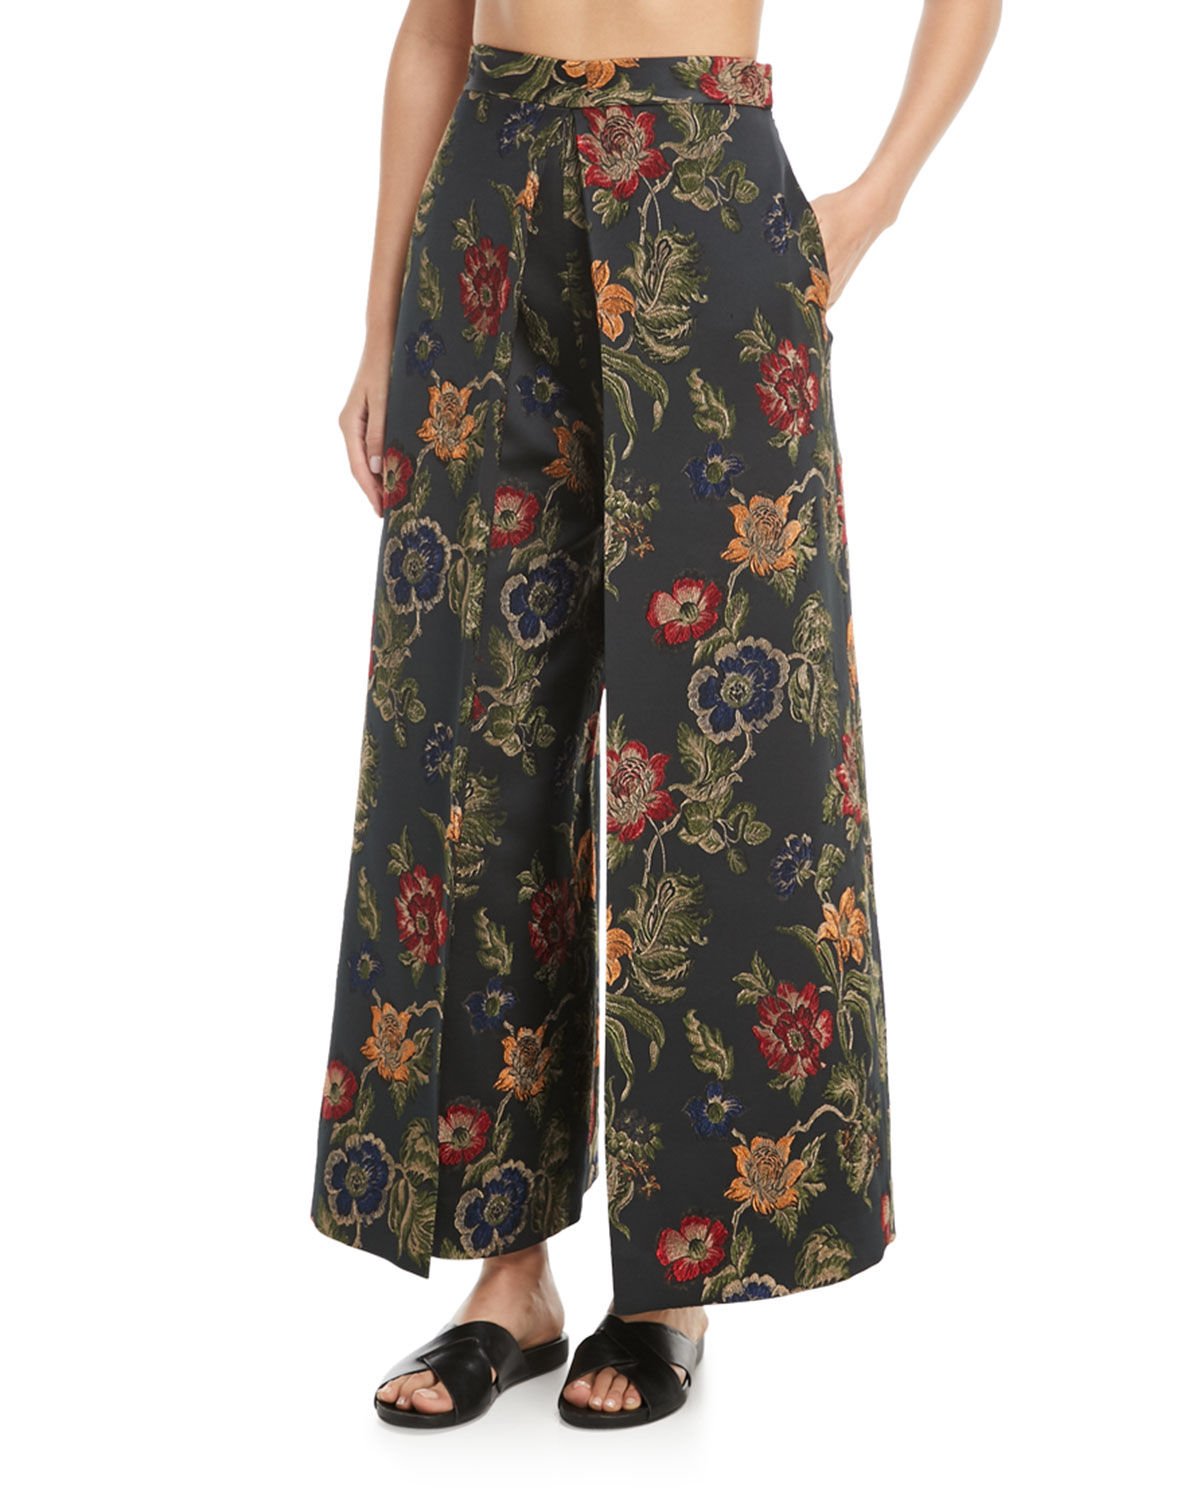 Pleat-Front Stretch Floral Satin Jacquard Culotte Pants